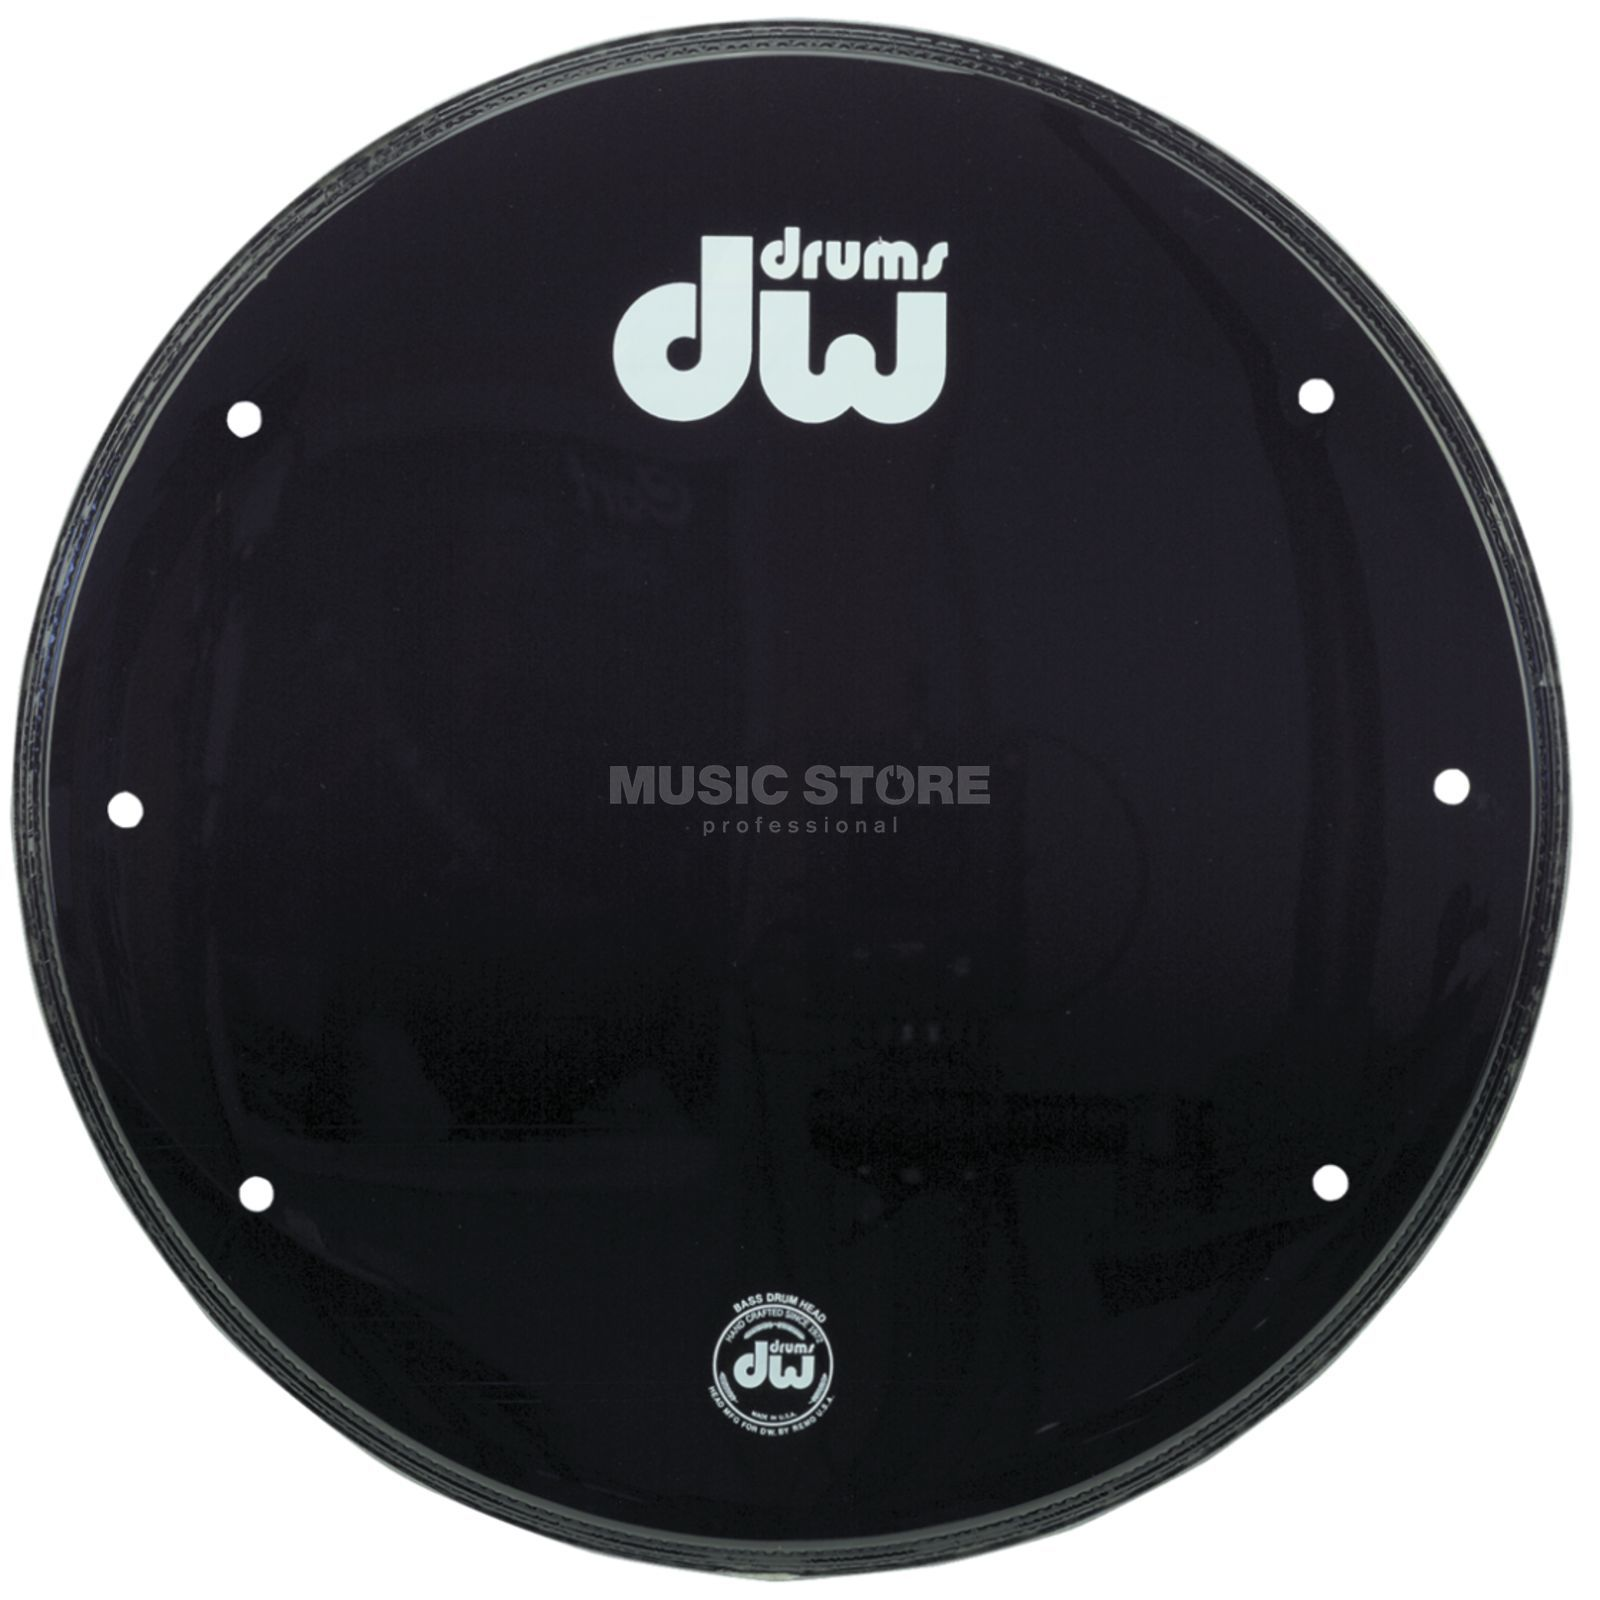 "Drum Workshop Bass Drum Front Head 22"", black, w/logo Zdjęcie produktu"